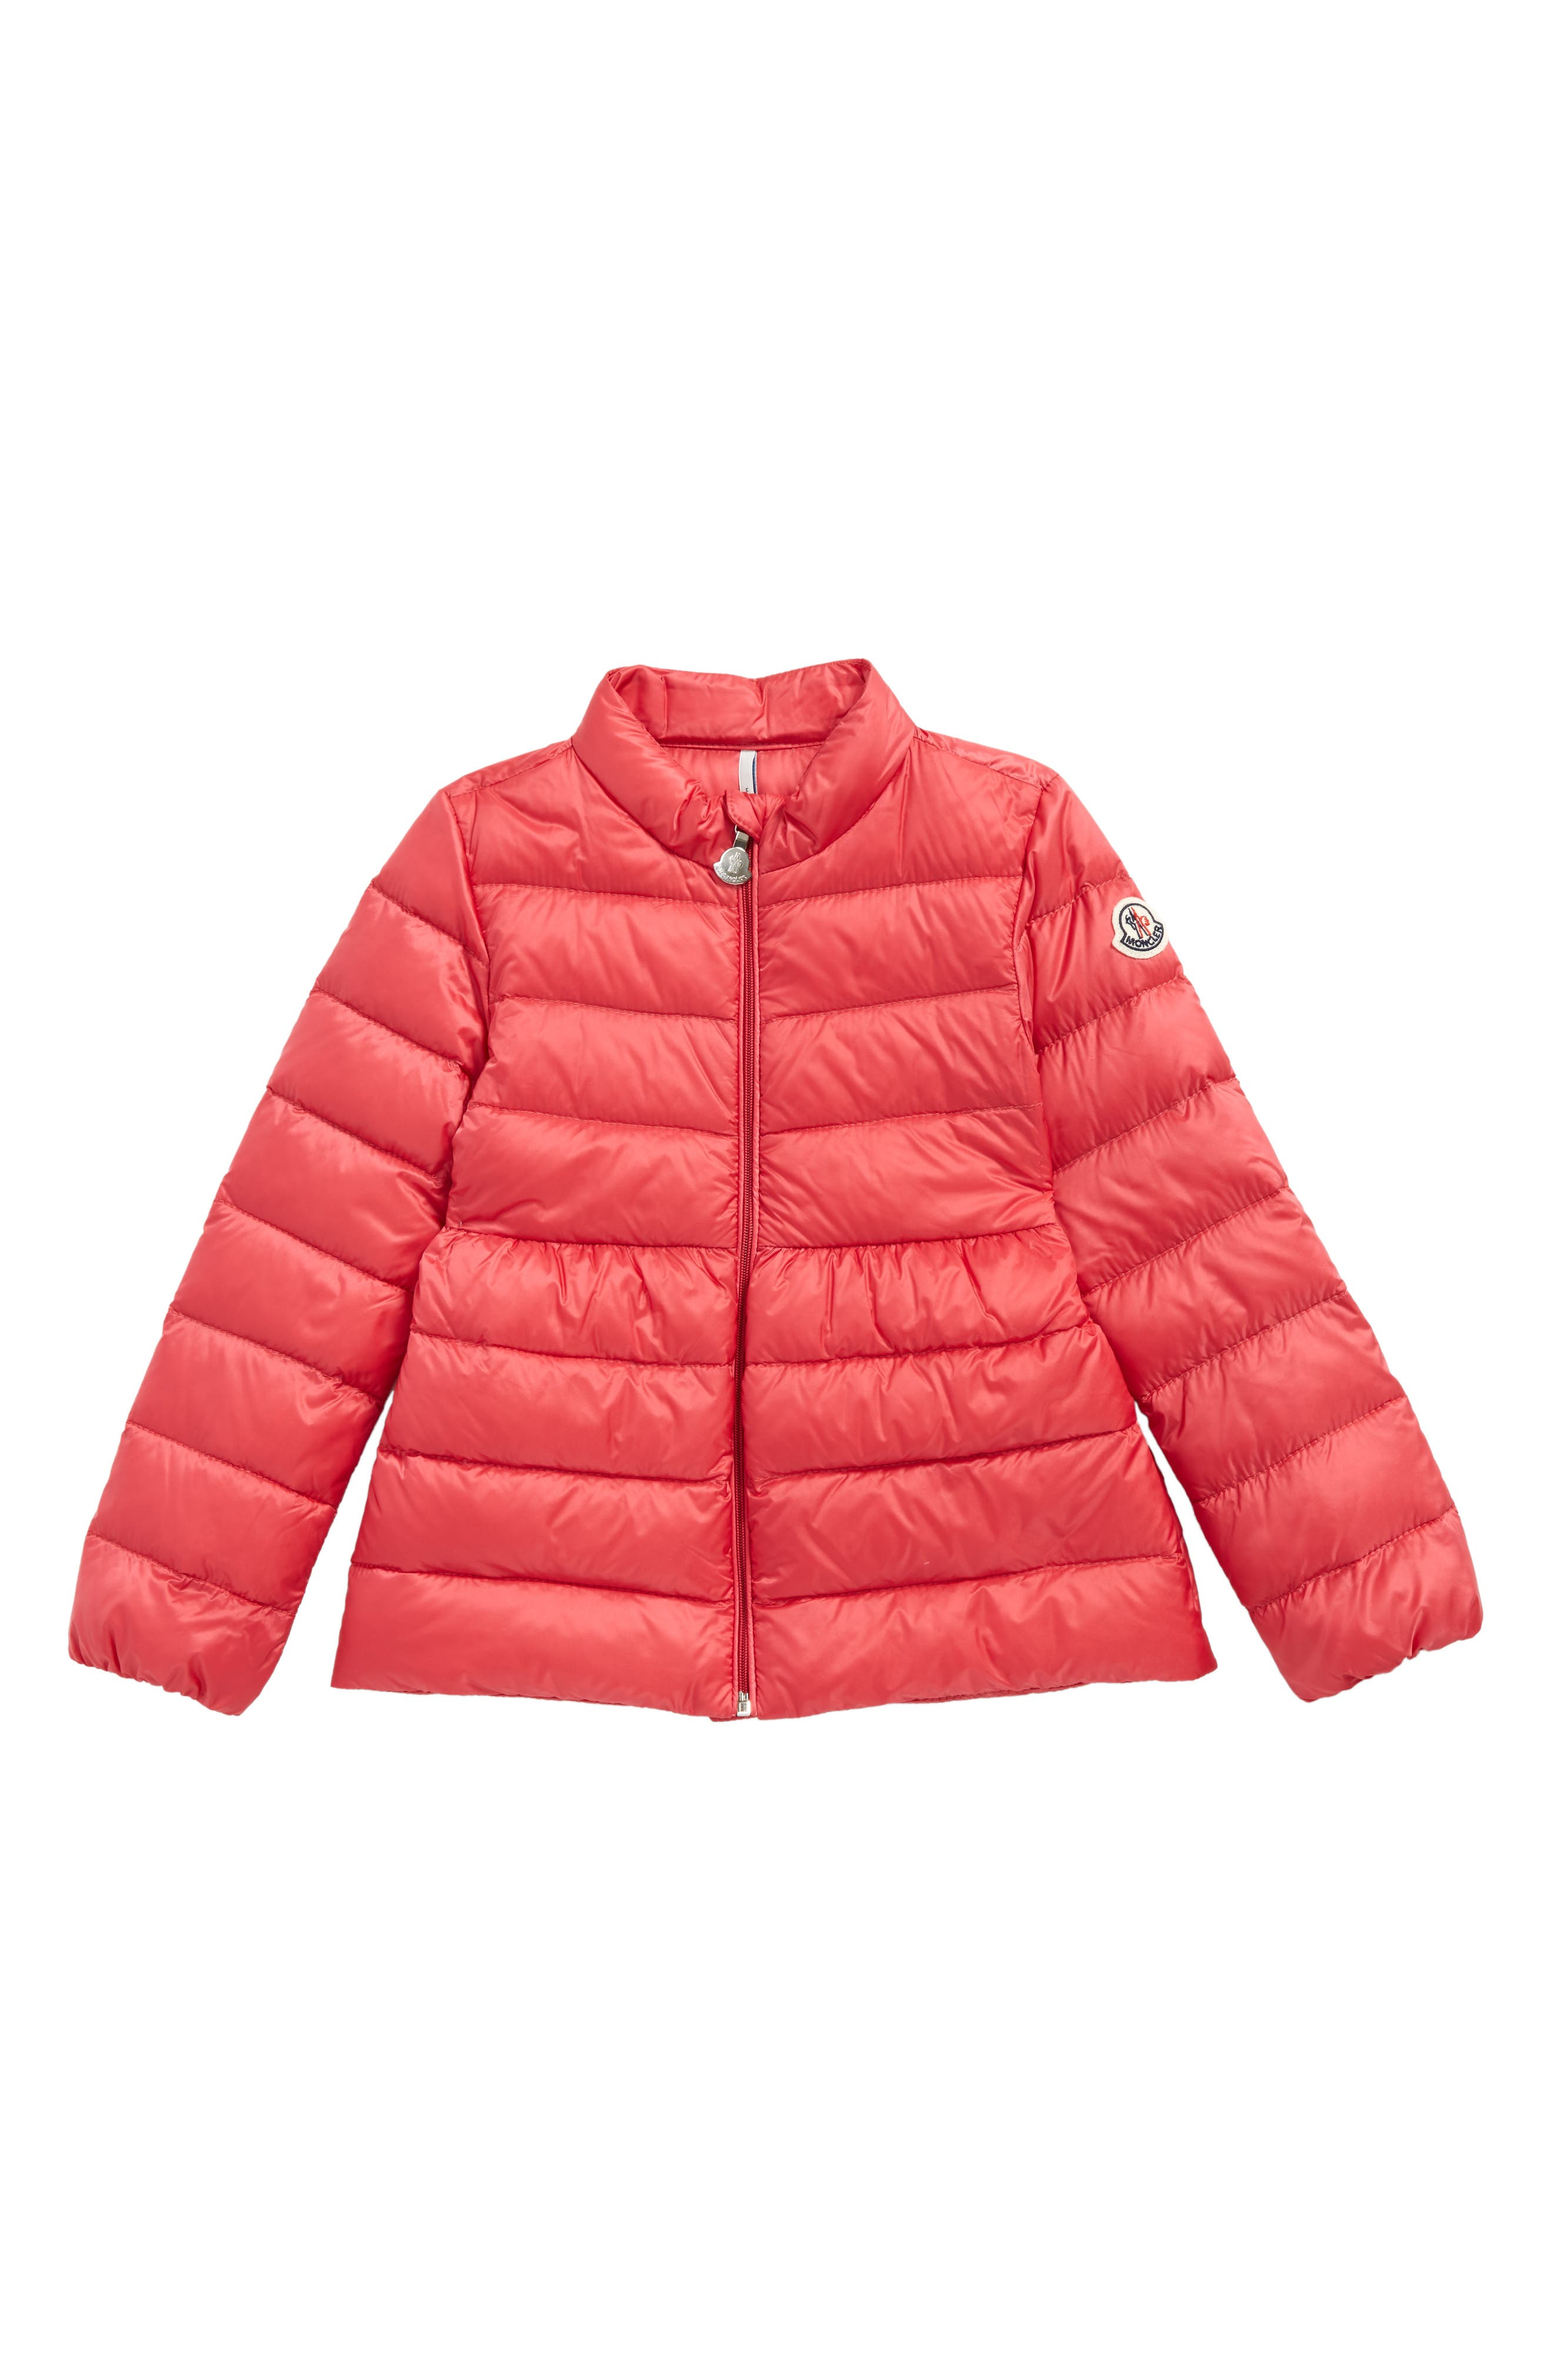 Alternate Image 1 Selected - Moncler Joelle Goose Down Coat (Toddler Girls)